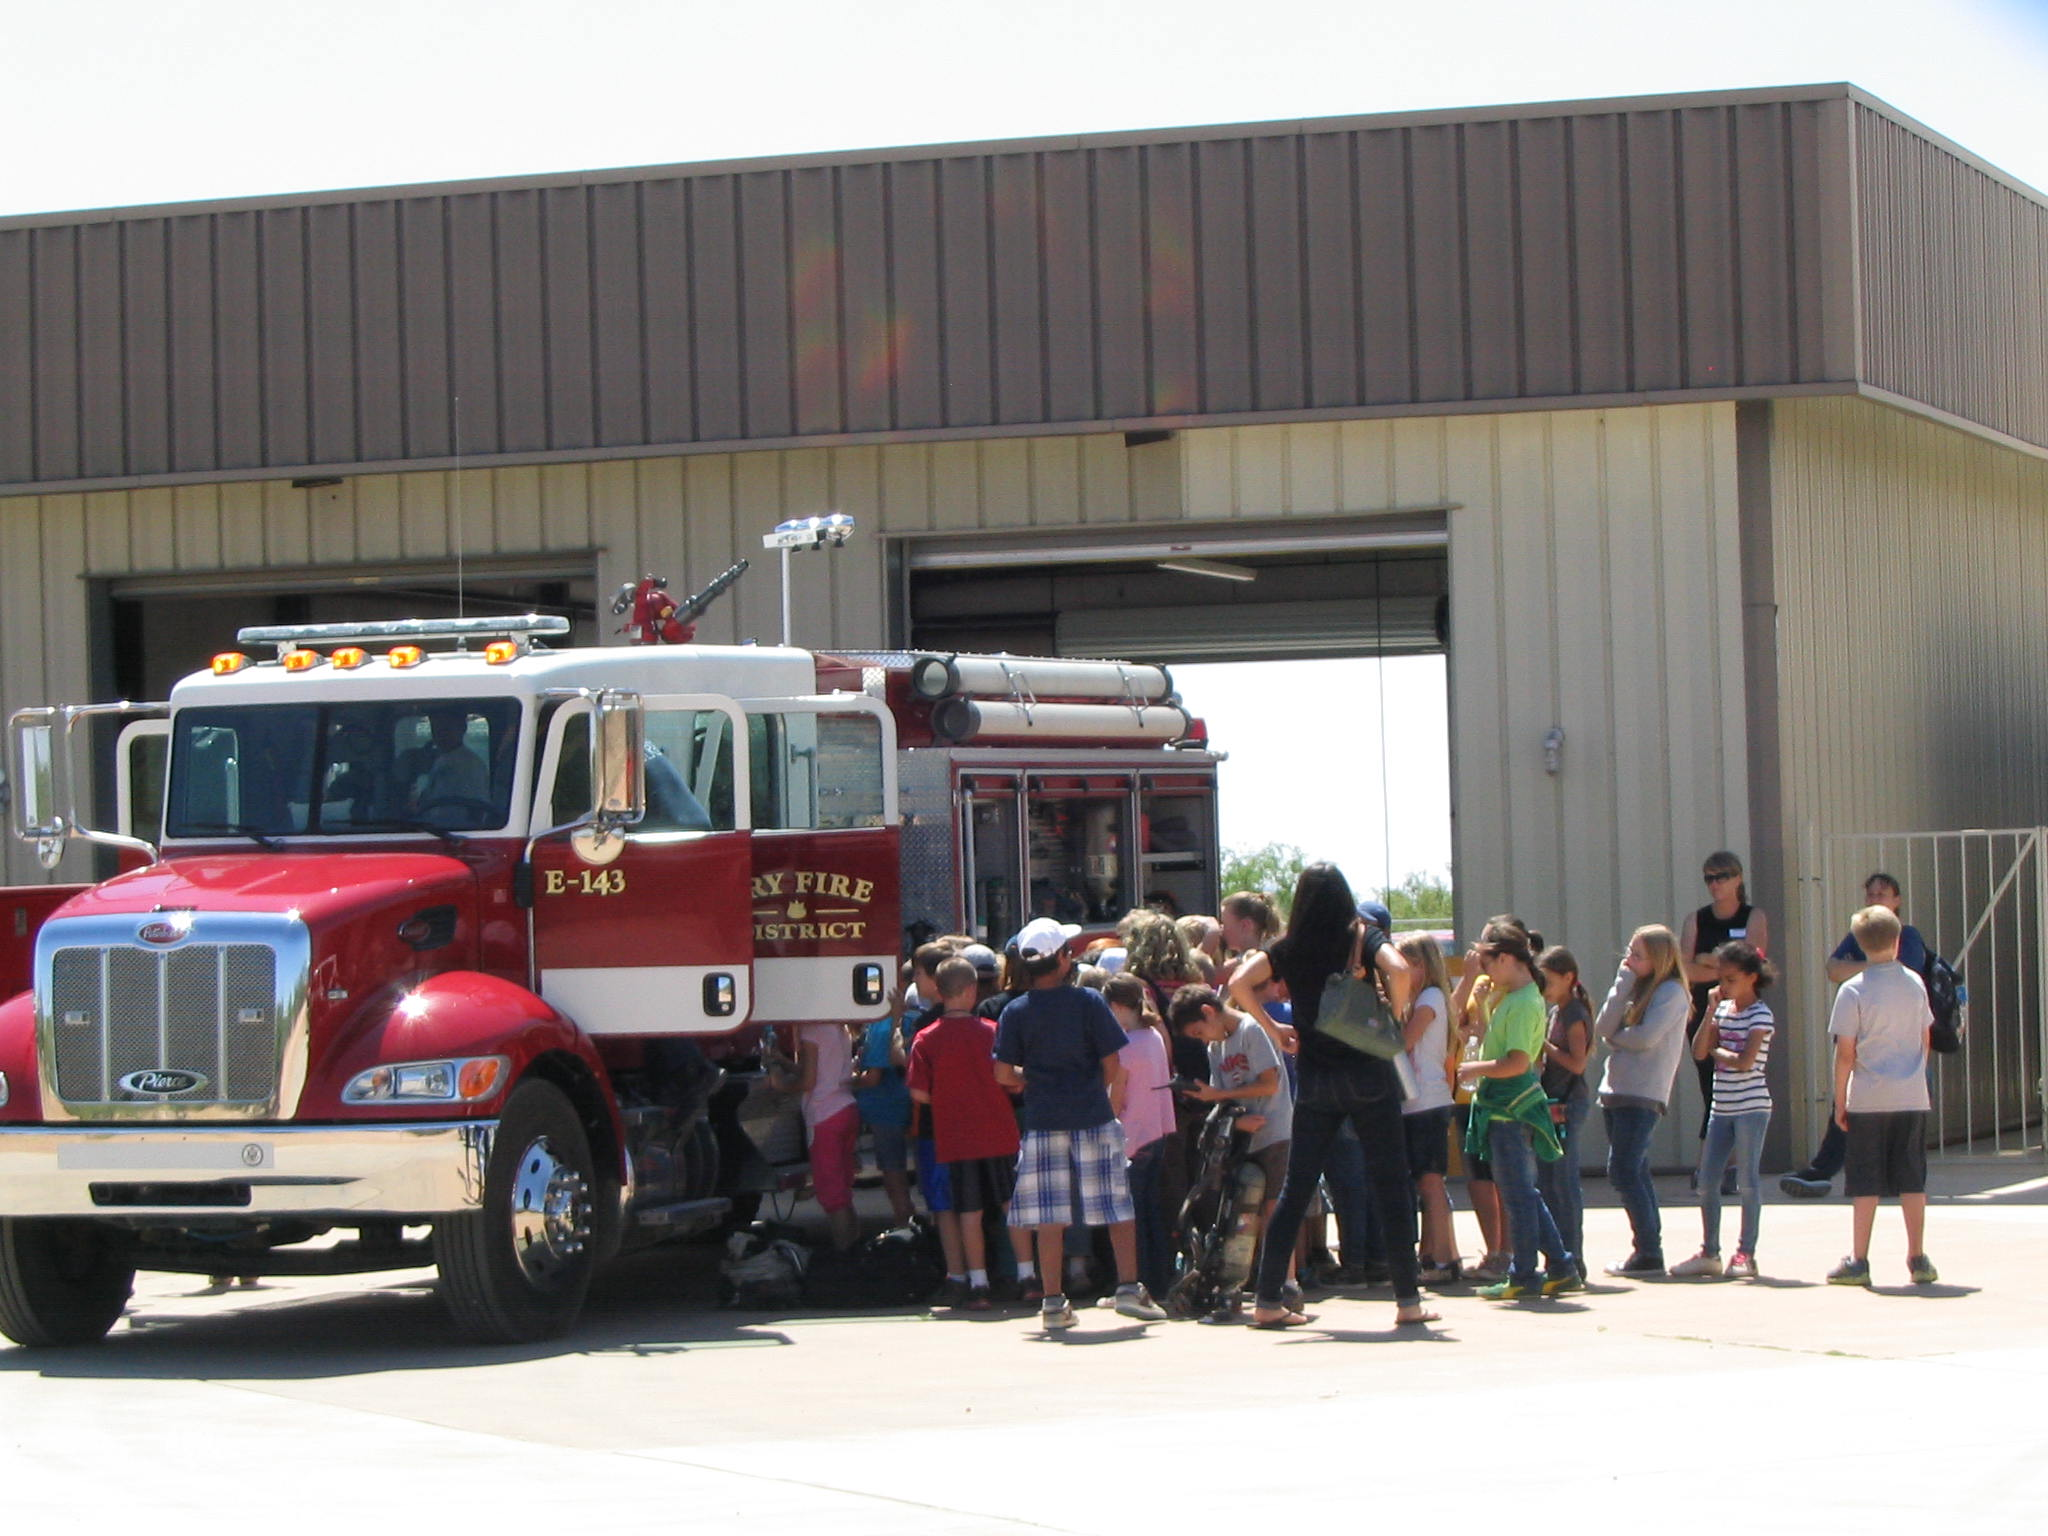 Tour of Fire Station